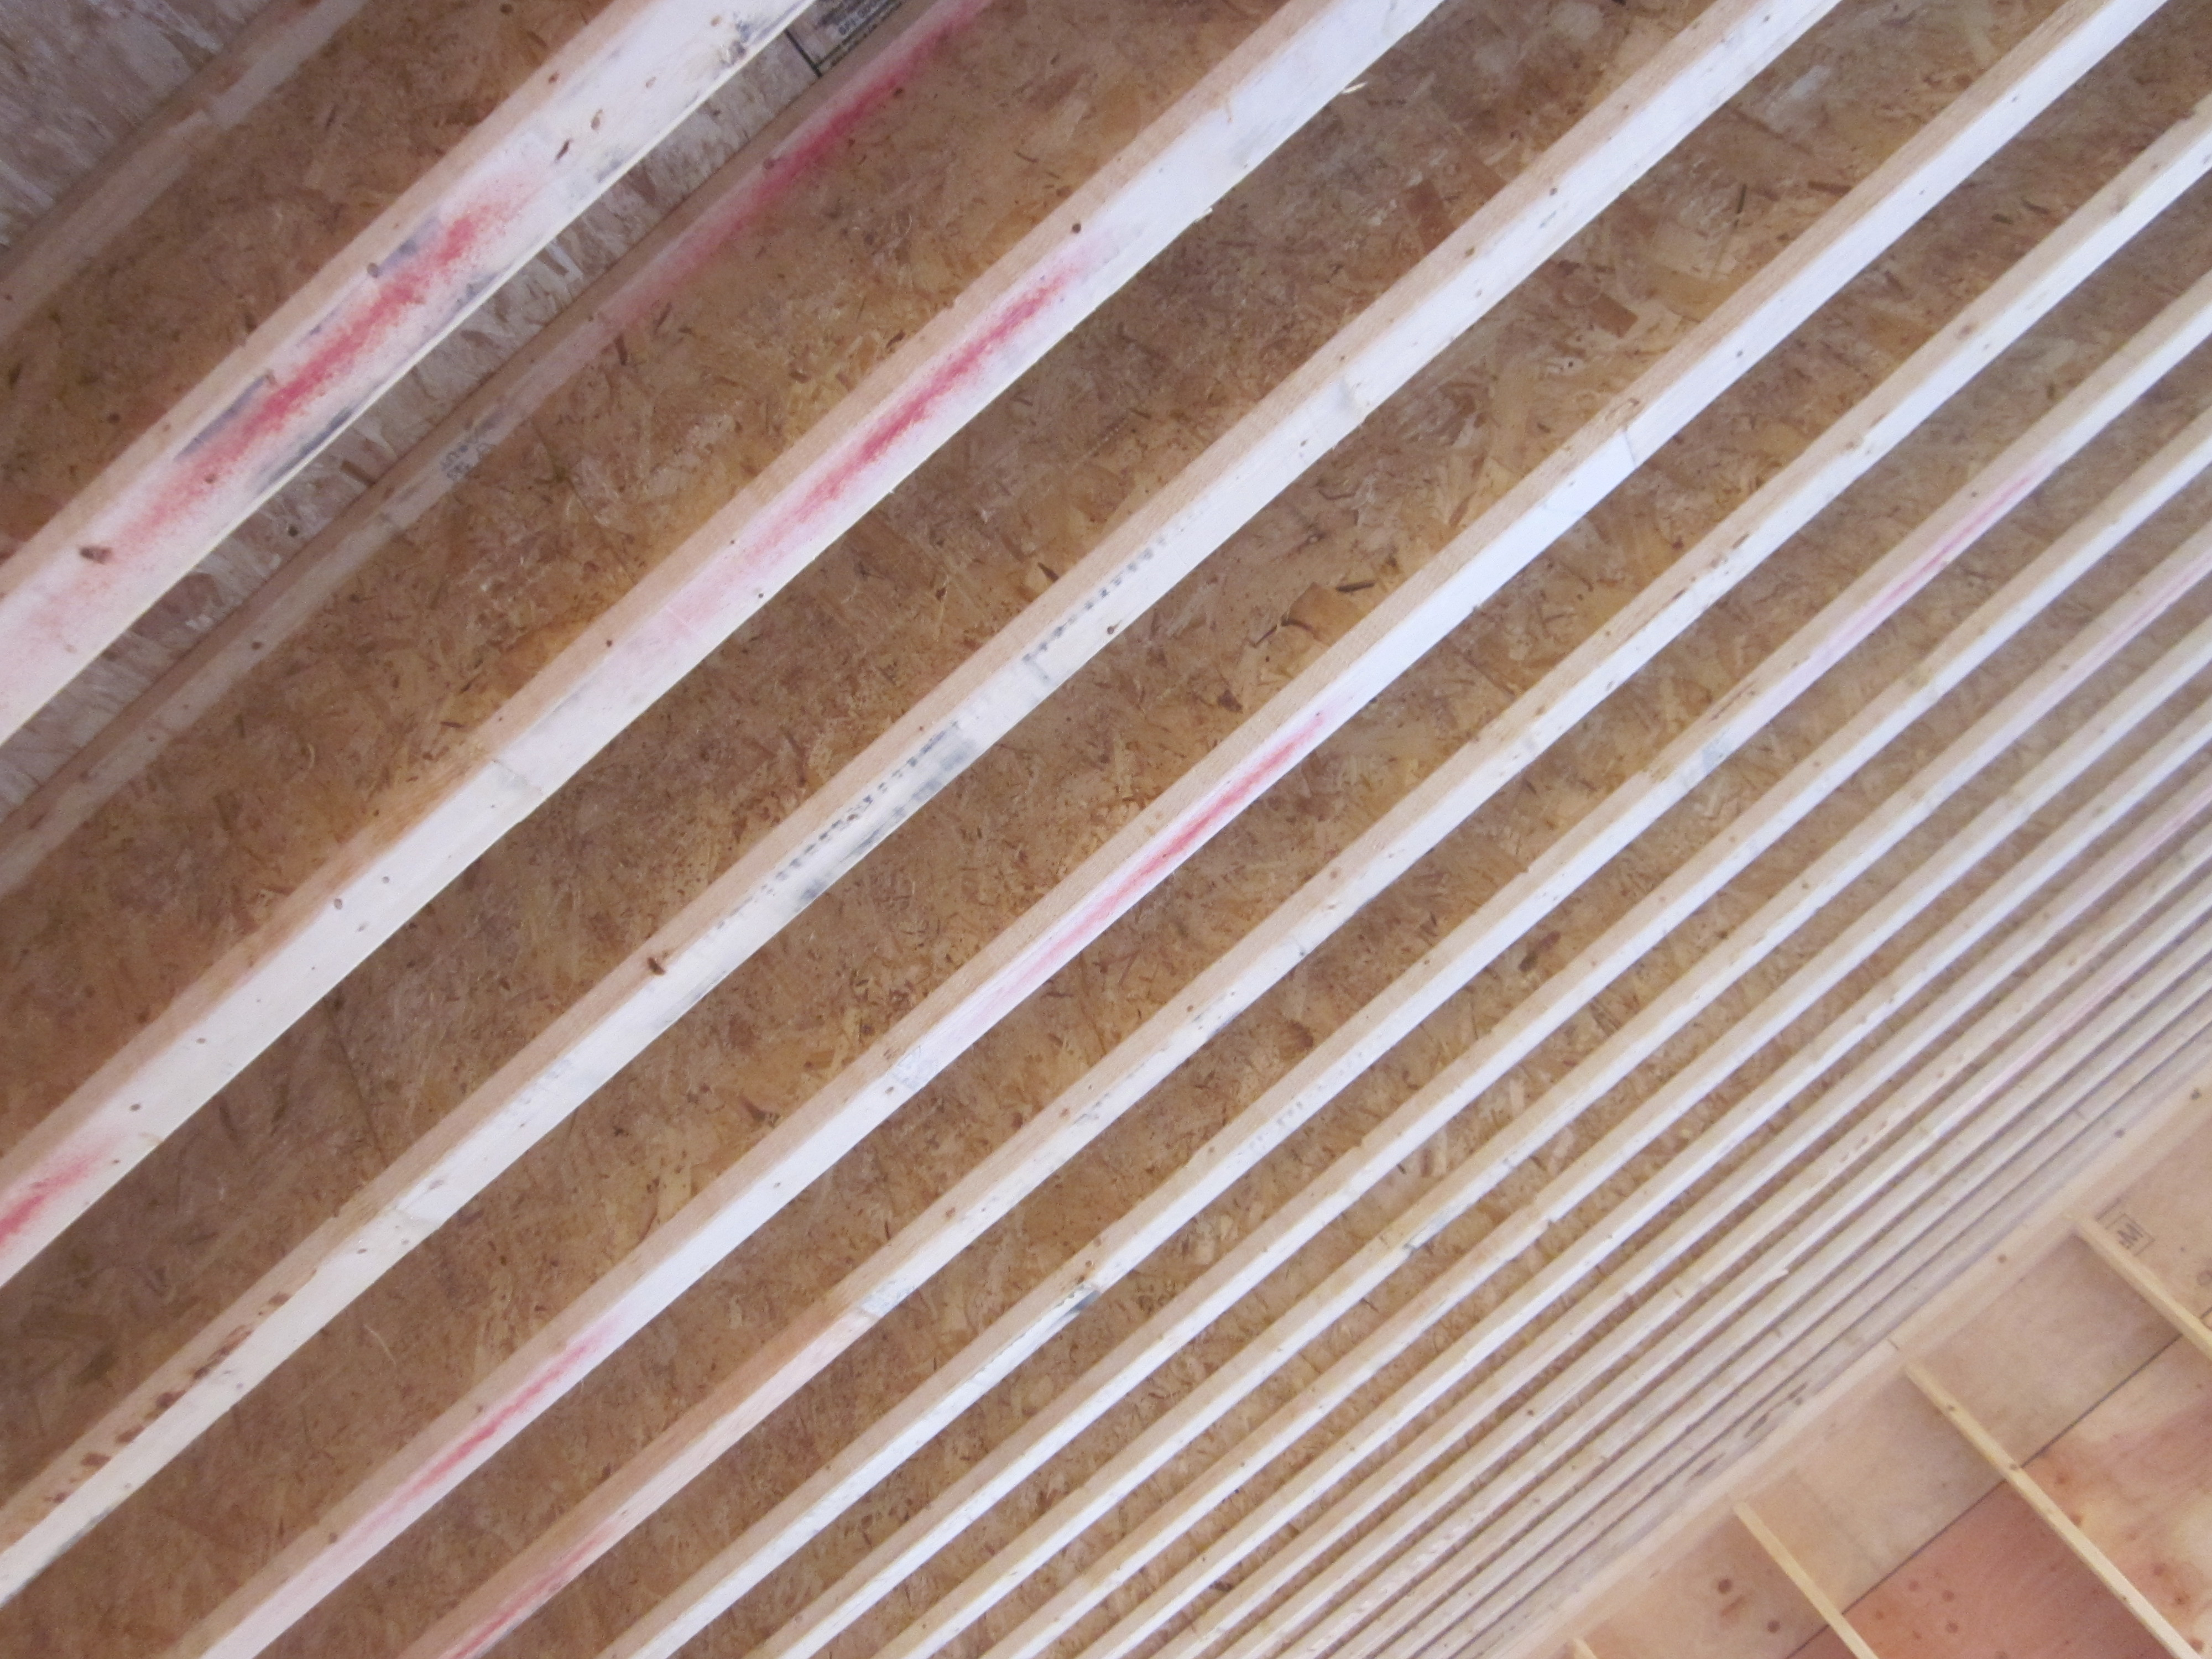 How To Build Wood I Joist Plans Free Download | fine84ivc